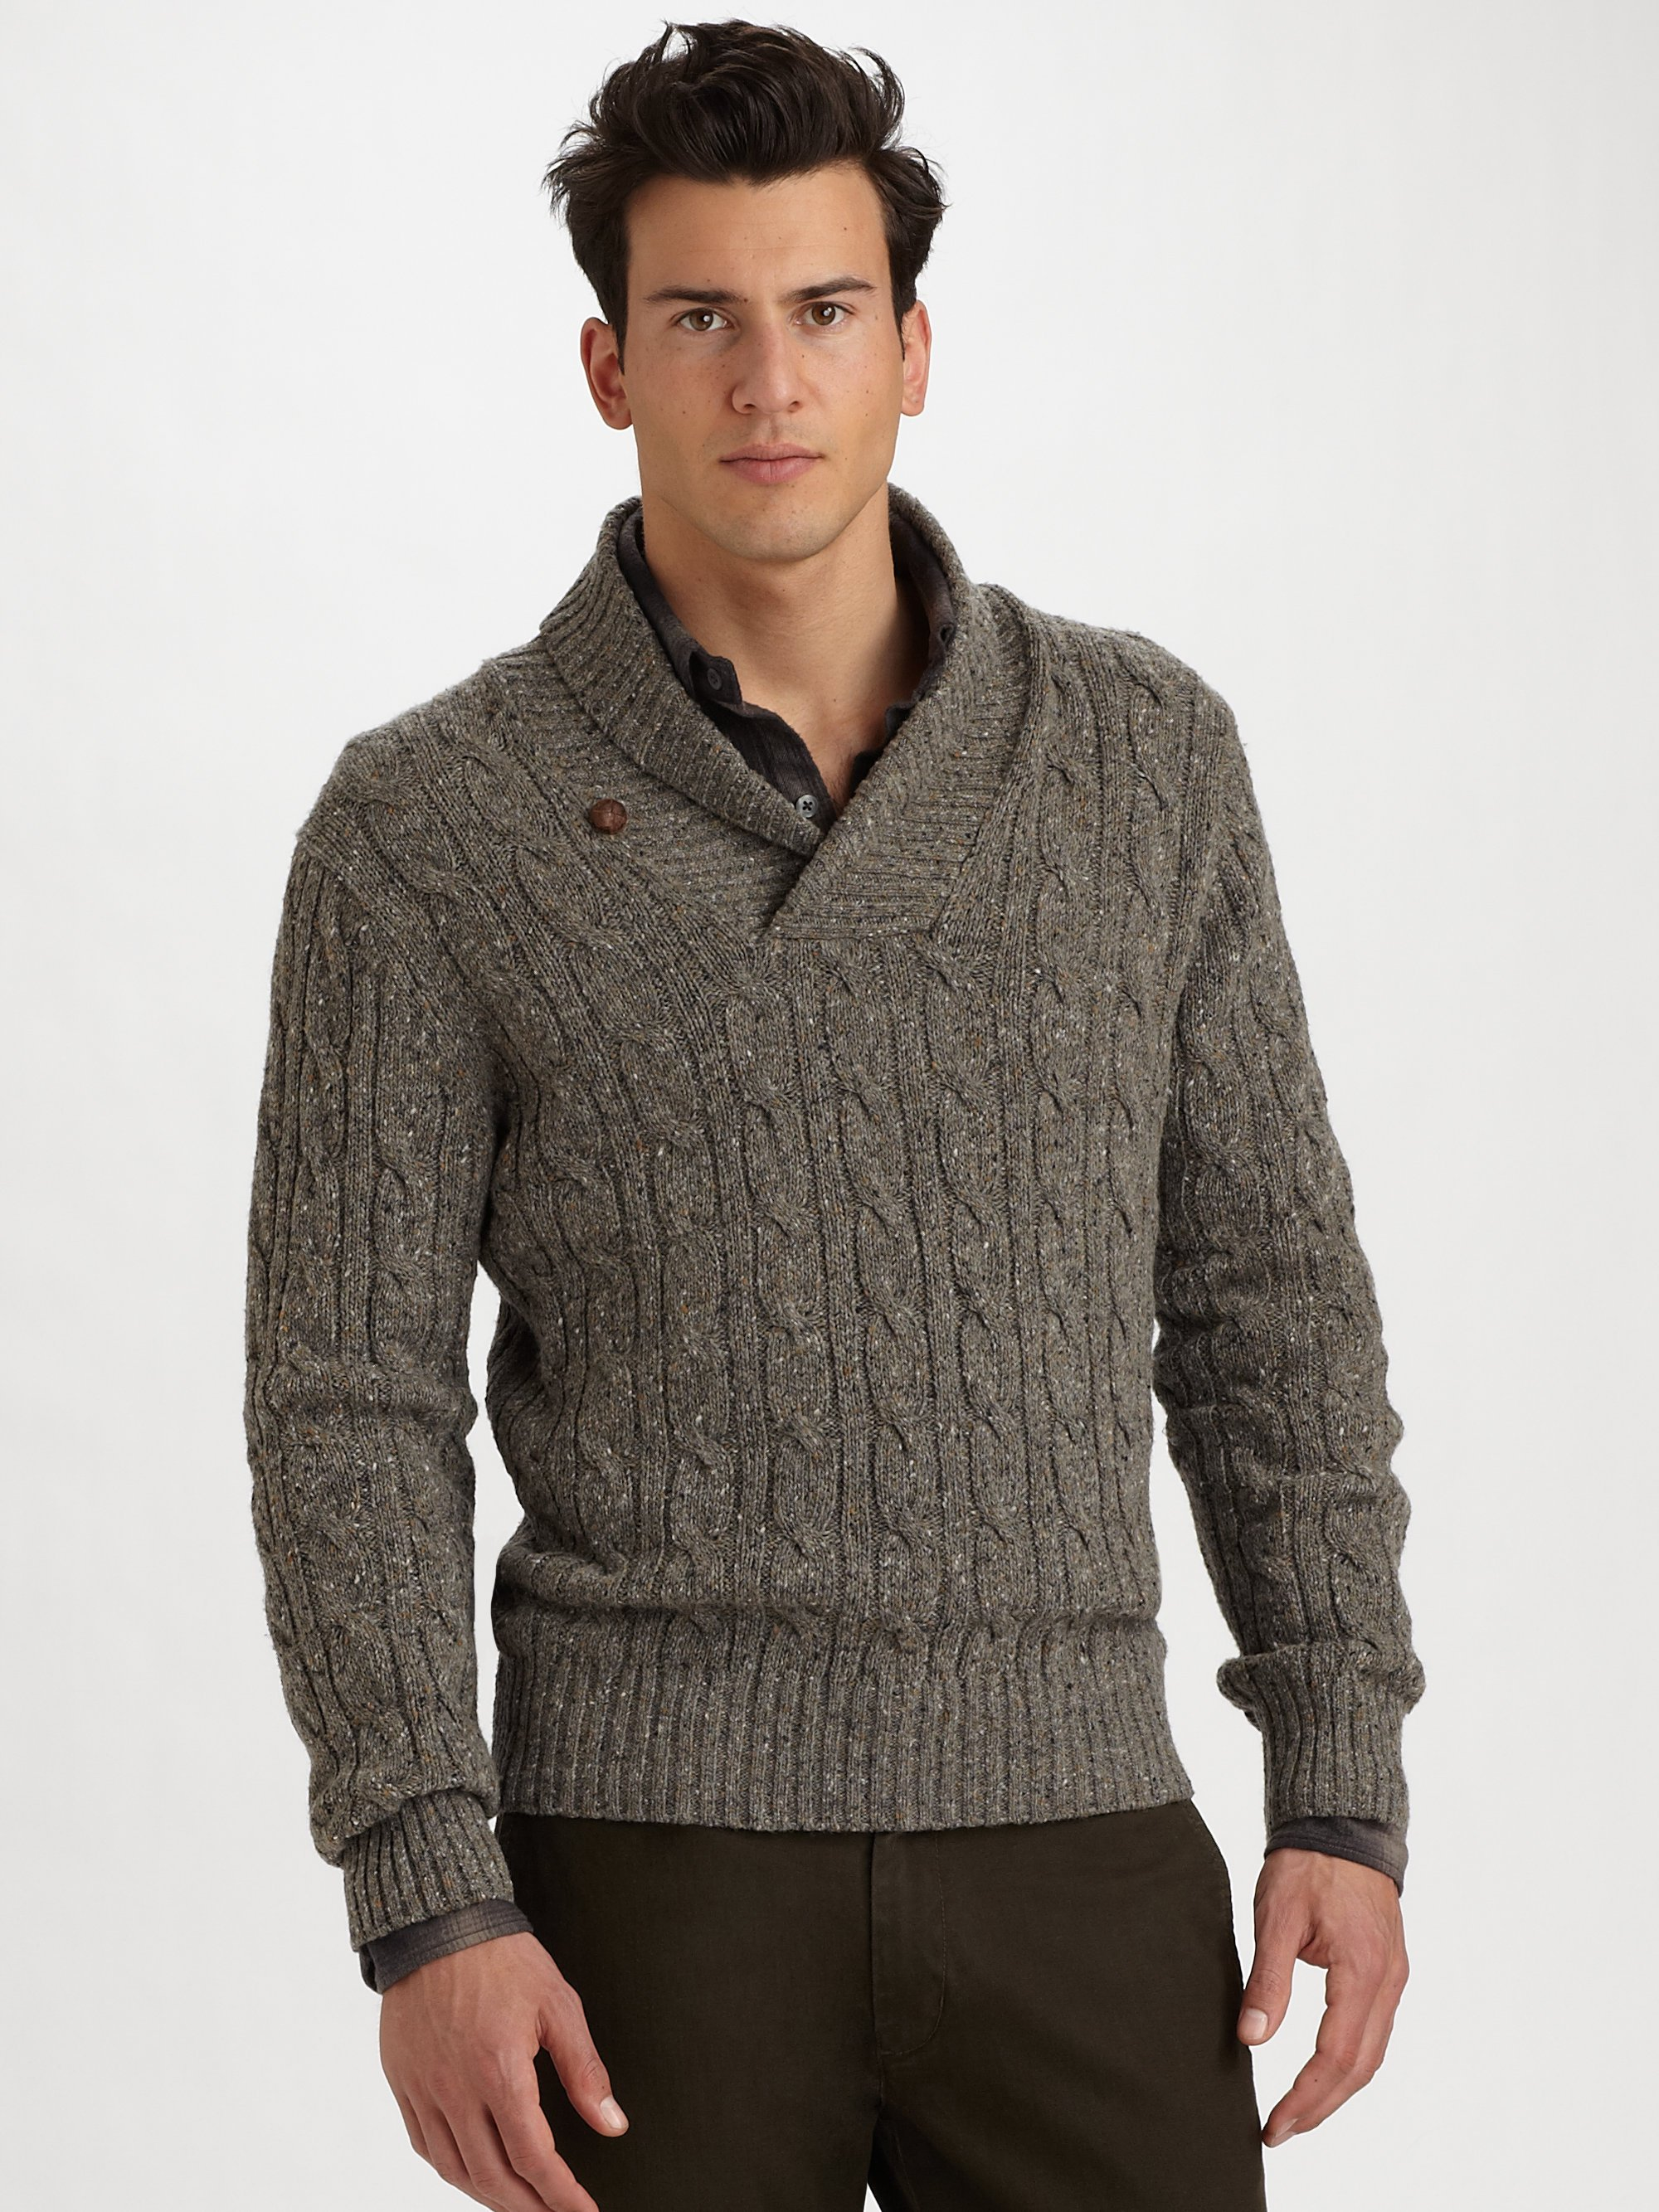 Free shipping on shawl collar sweaters for men at deletzloads.tk Shop cashmere, wool & cotton sweaters in regular & trim fits. Totally free shipping & returns.